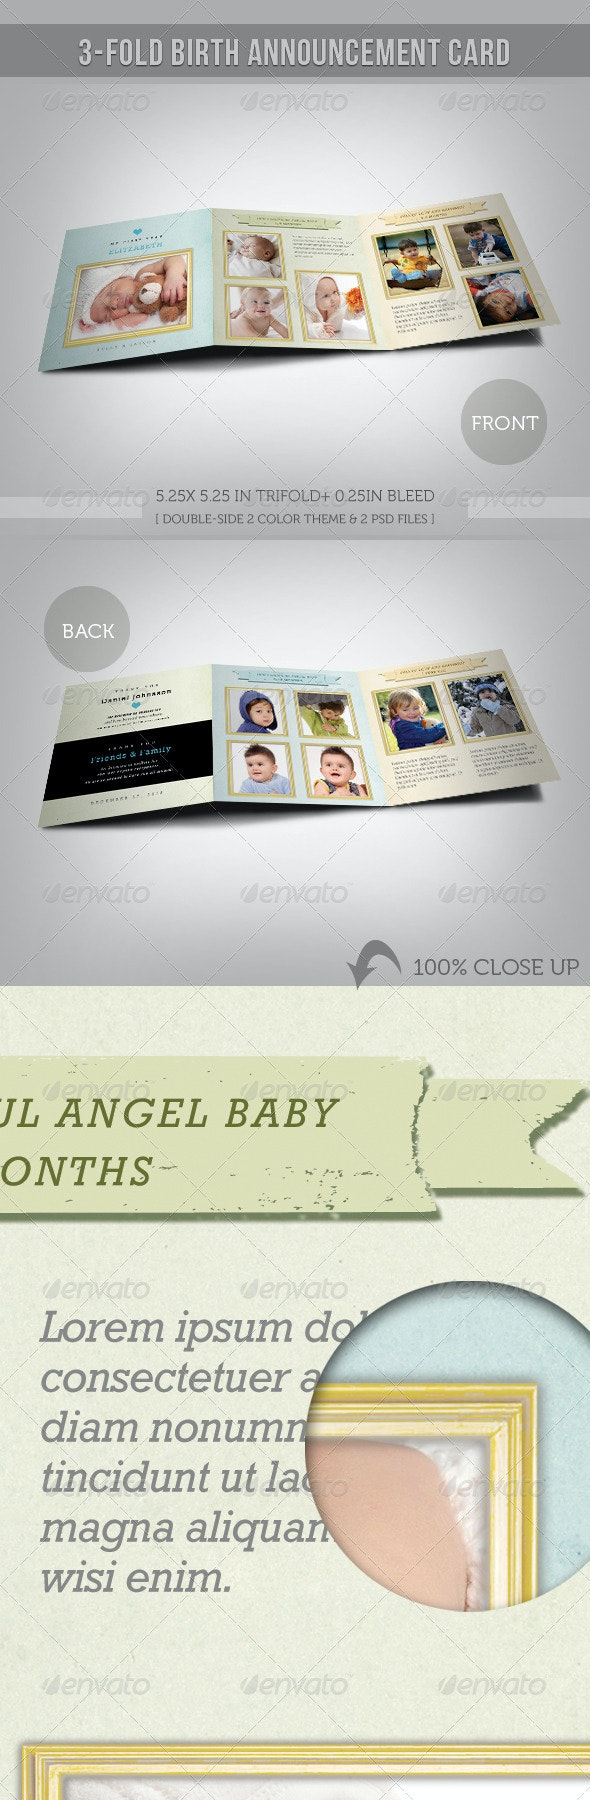 3-fold Birth Announcement Card With Images 02 - Cards & Invites Print Templates